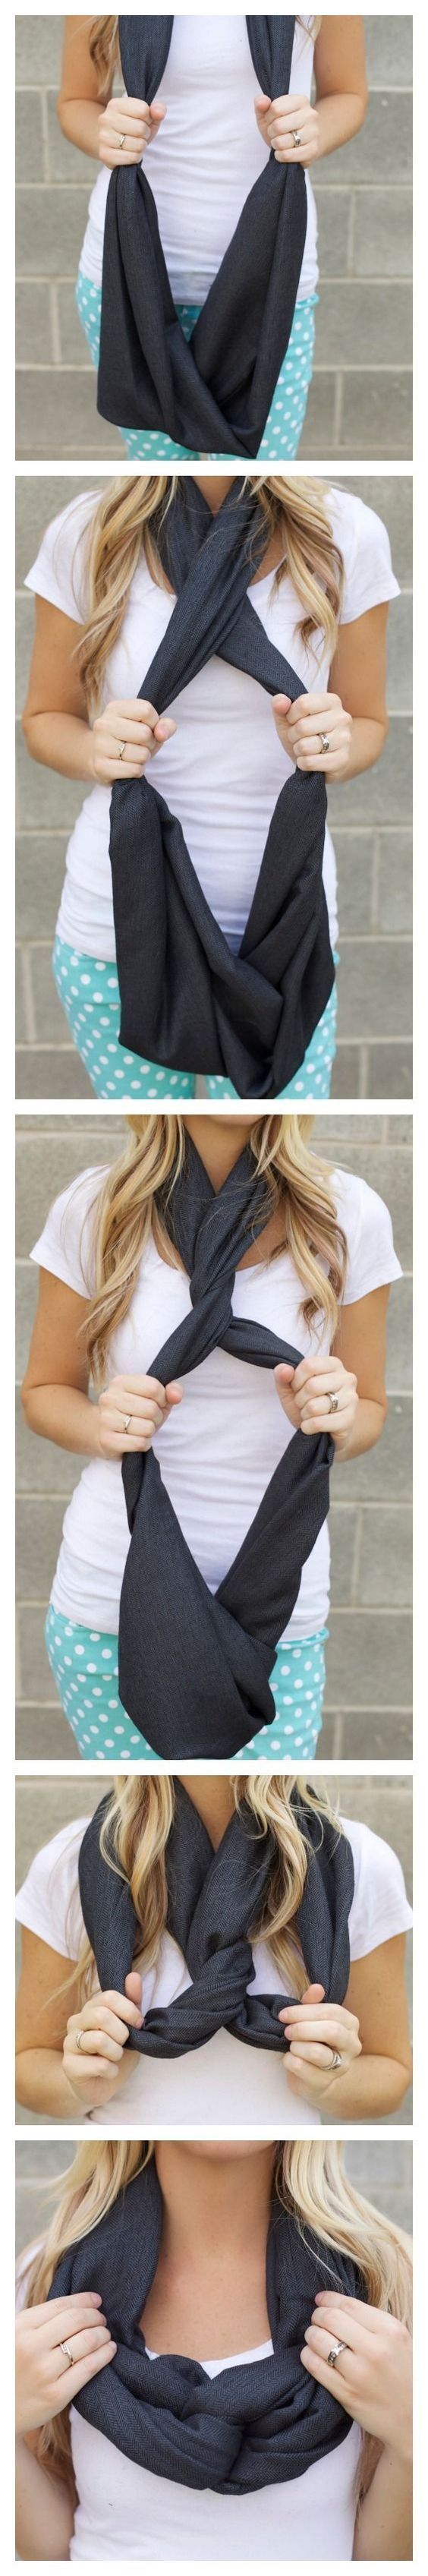 Tie that infinity scarf perfectly! Here's 21 easy ways to style your infinity scarf depending on what you're wearing! Which way would you tie your scarf?